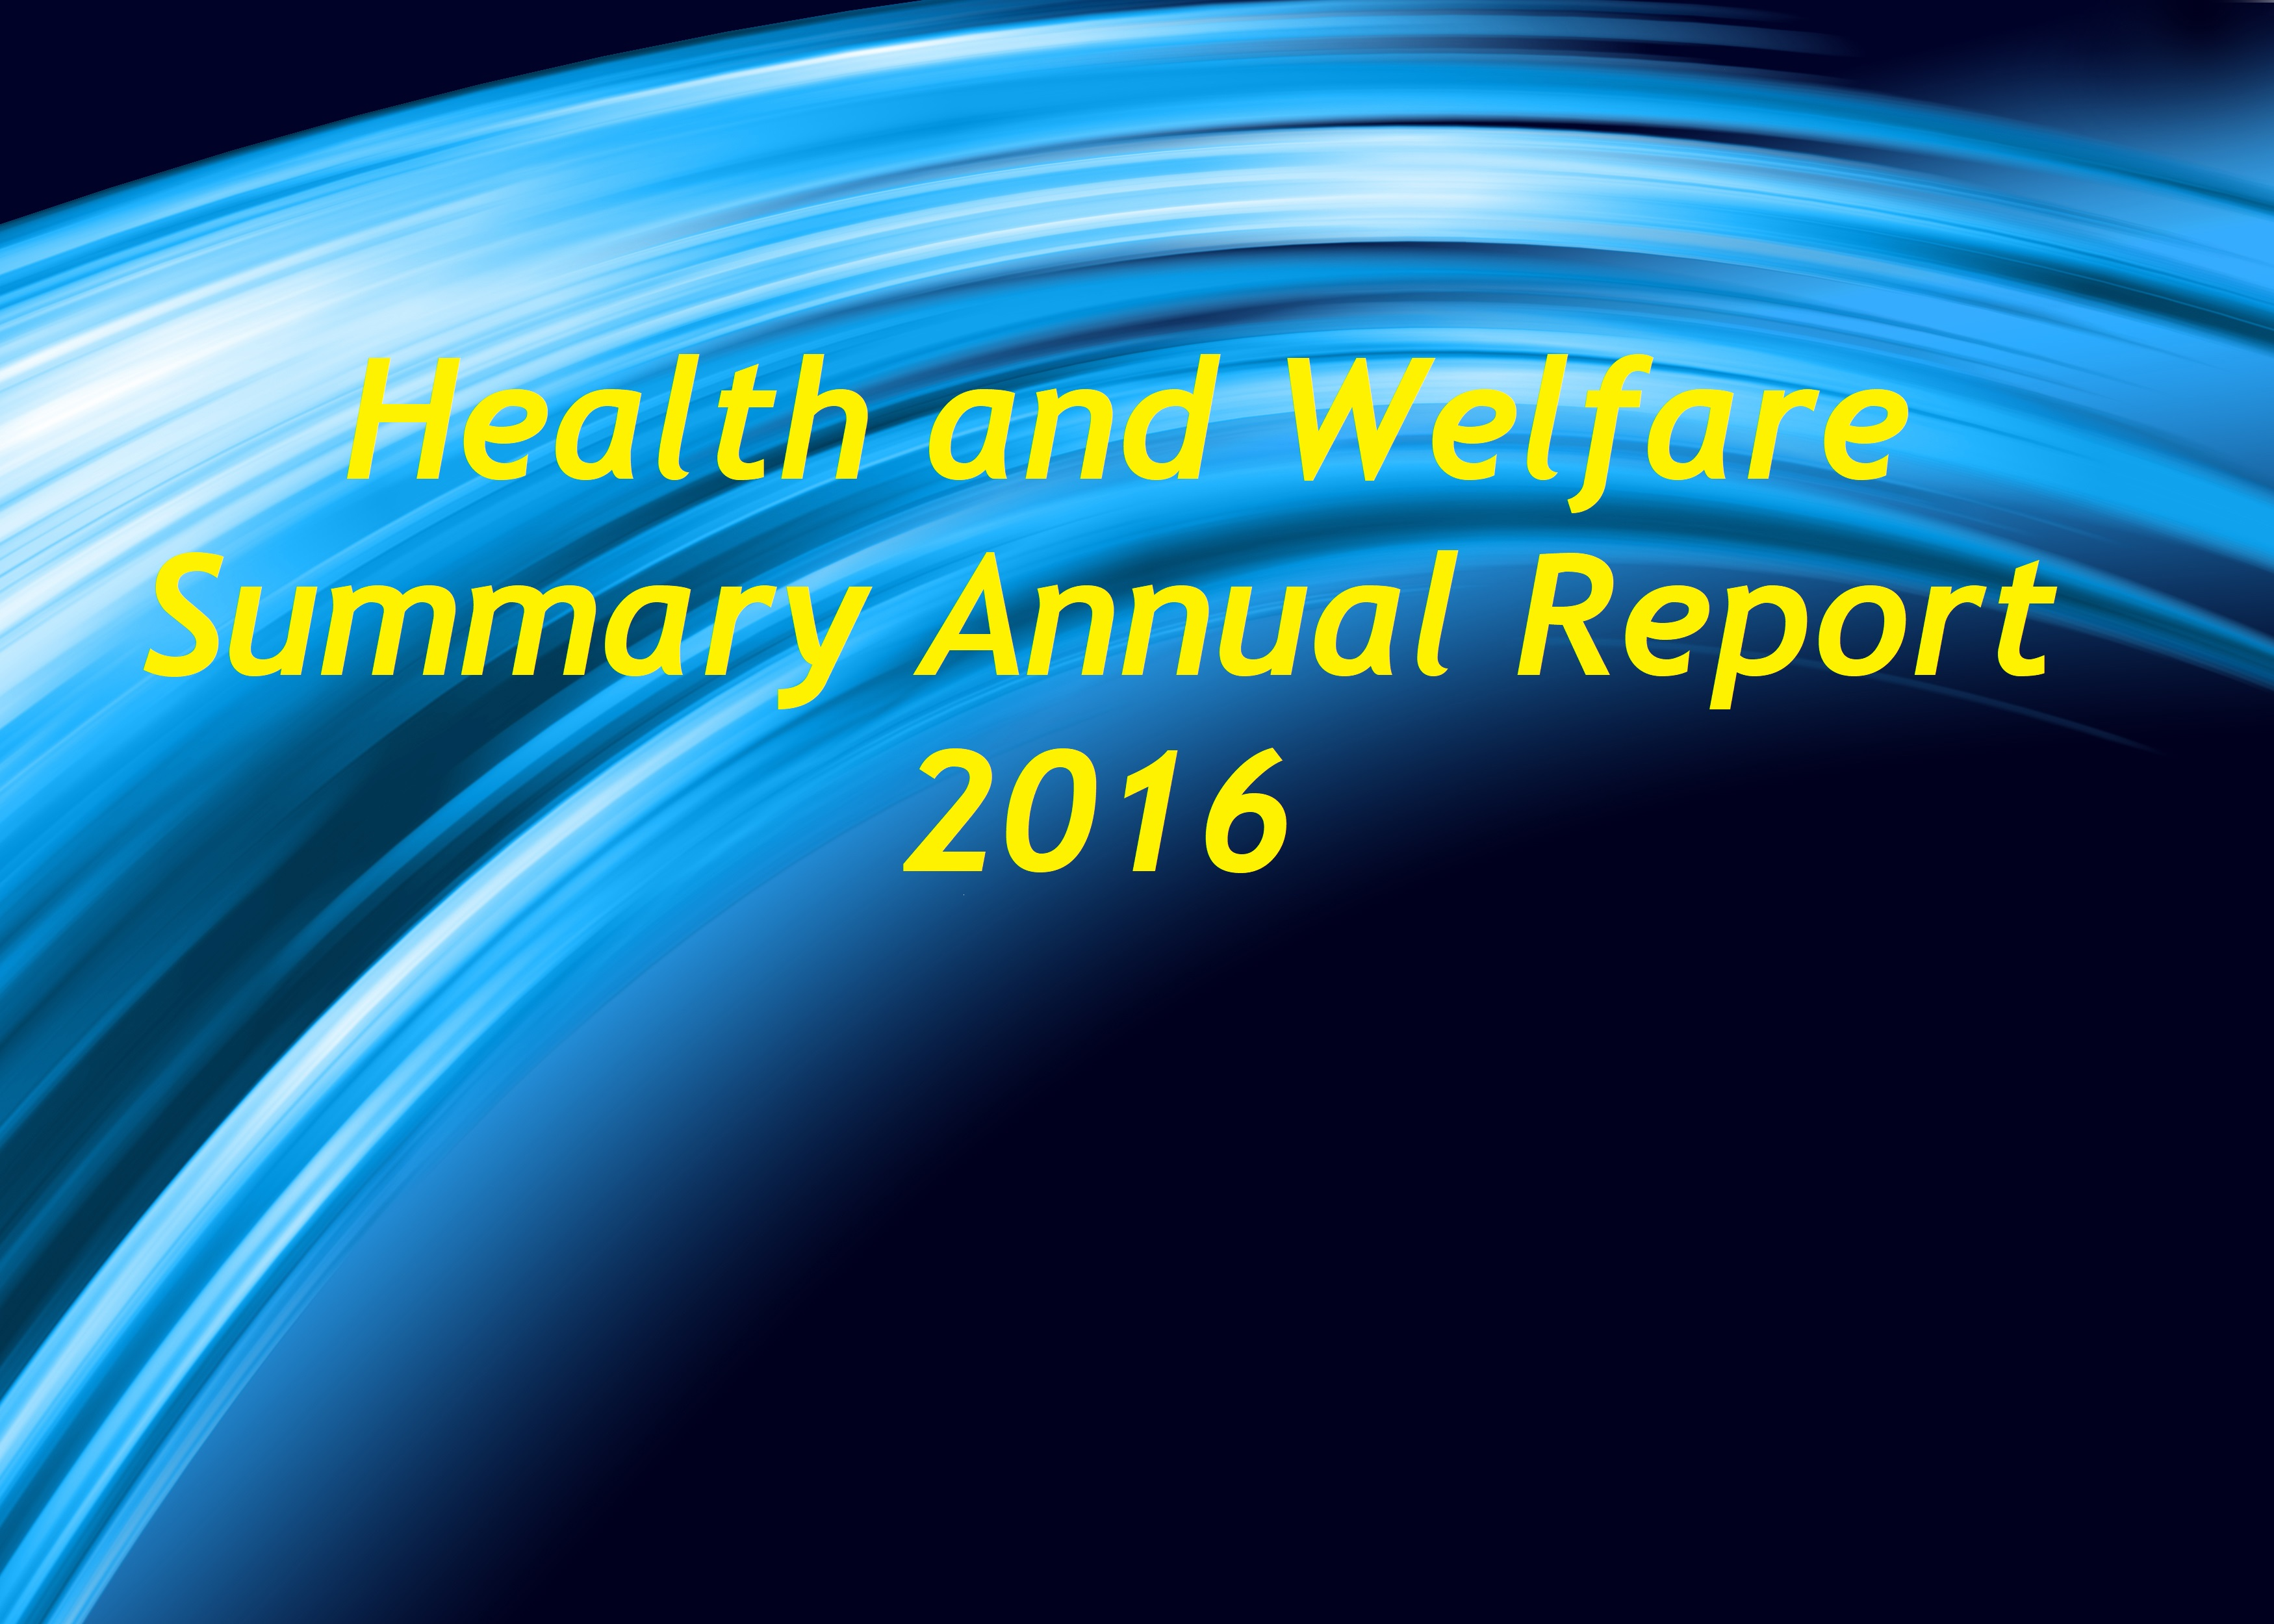 Health and Welfare Summary Annual Report (SAR) – For Plan Year Ending December 31, 2016